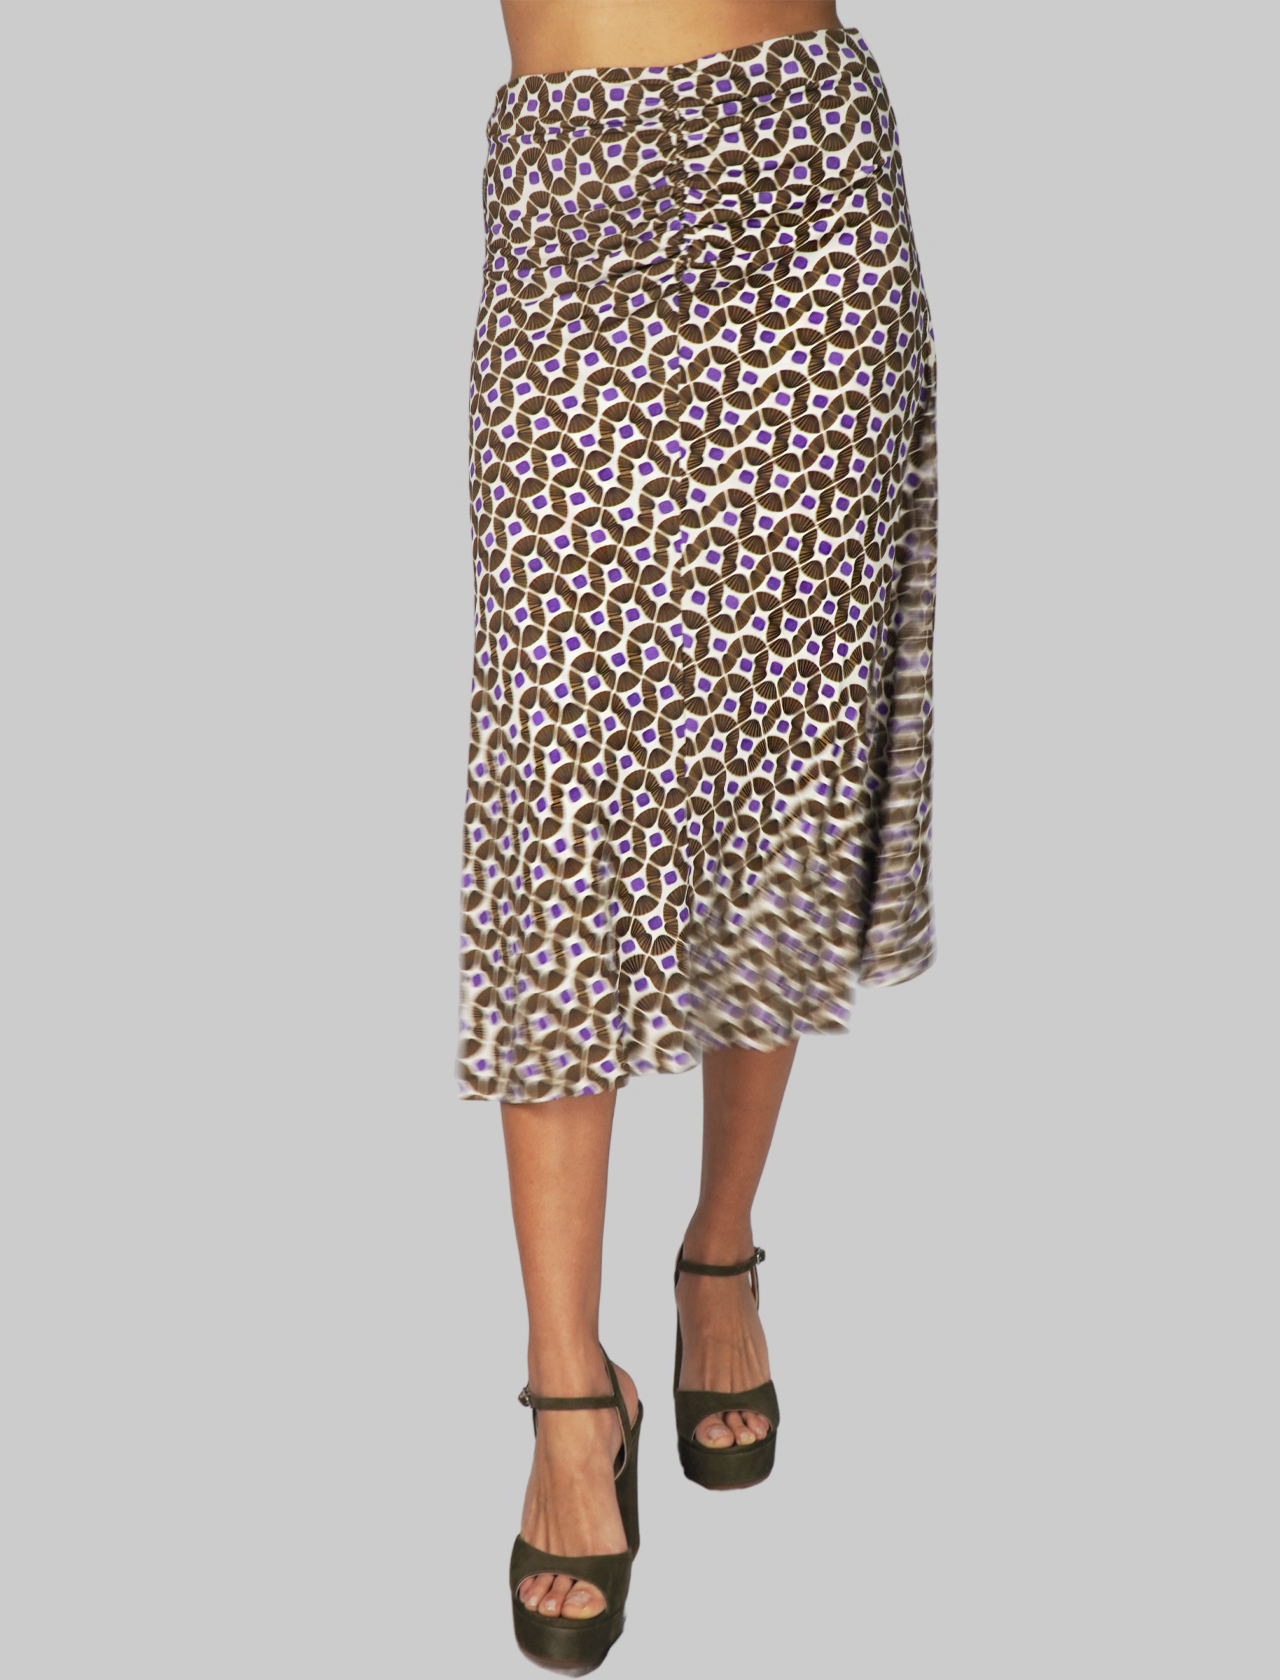 Women's Clothing Beige Printed Happy Frame Jersey Skirt Maliparmi | Skirts and Pants | JG359070493B1104